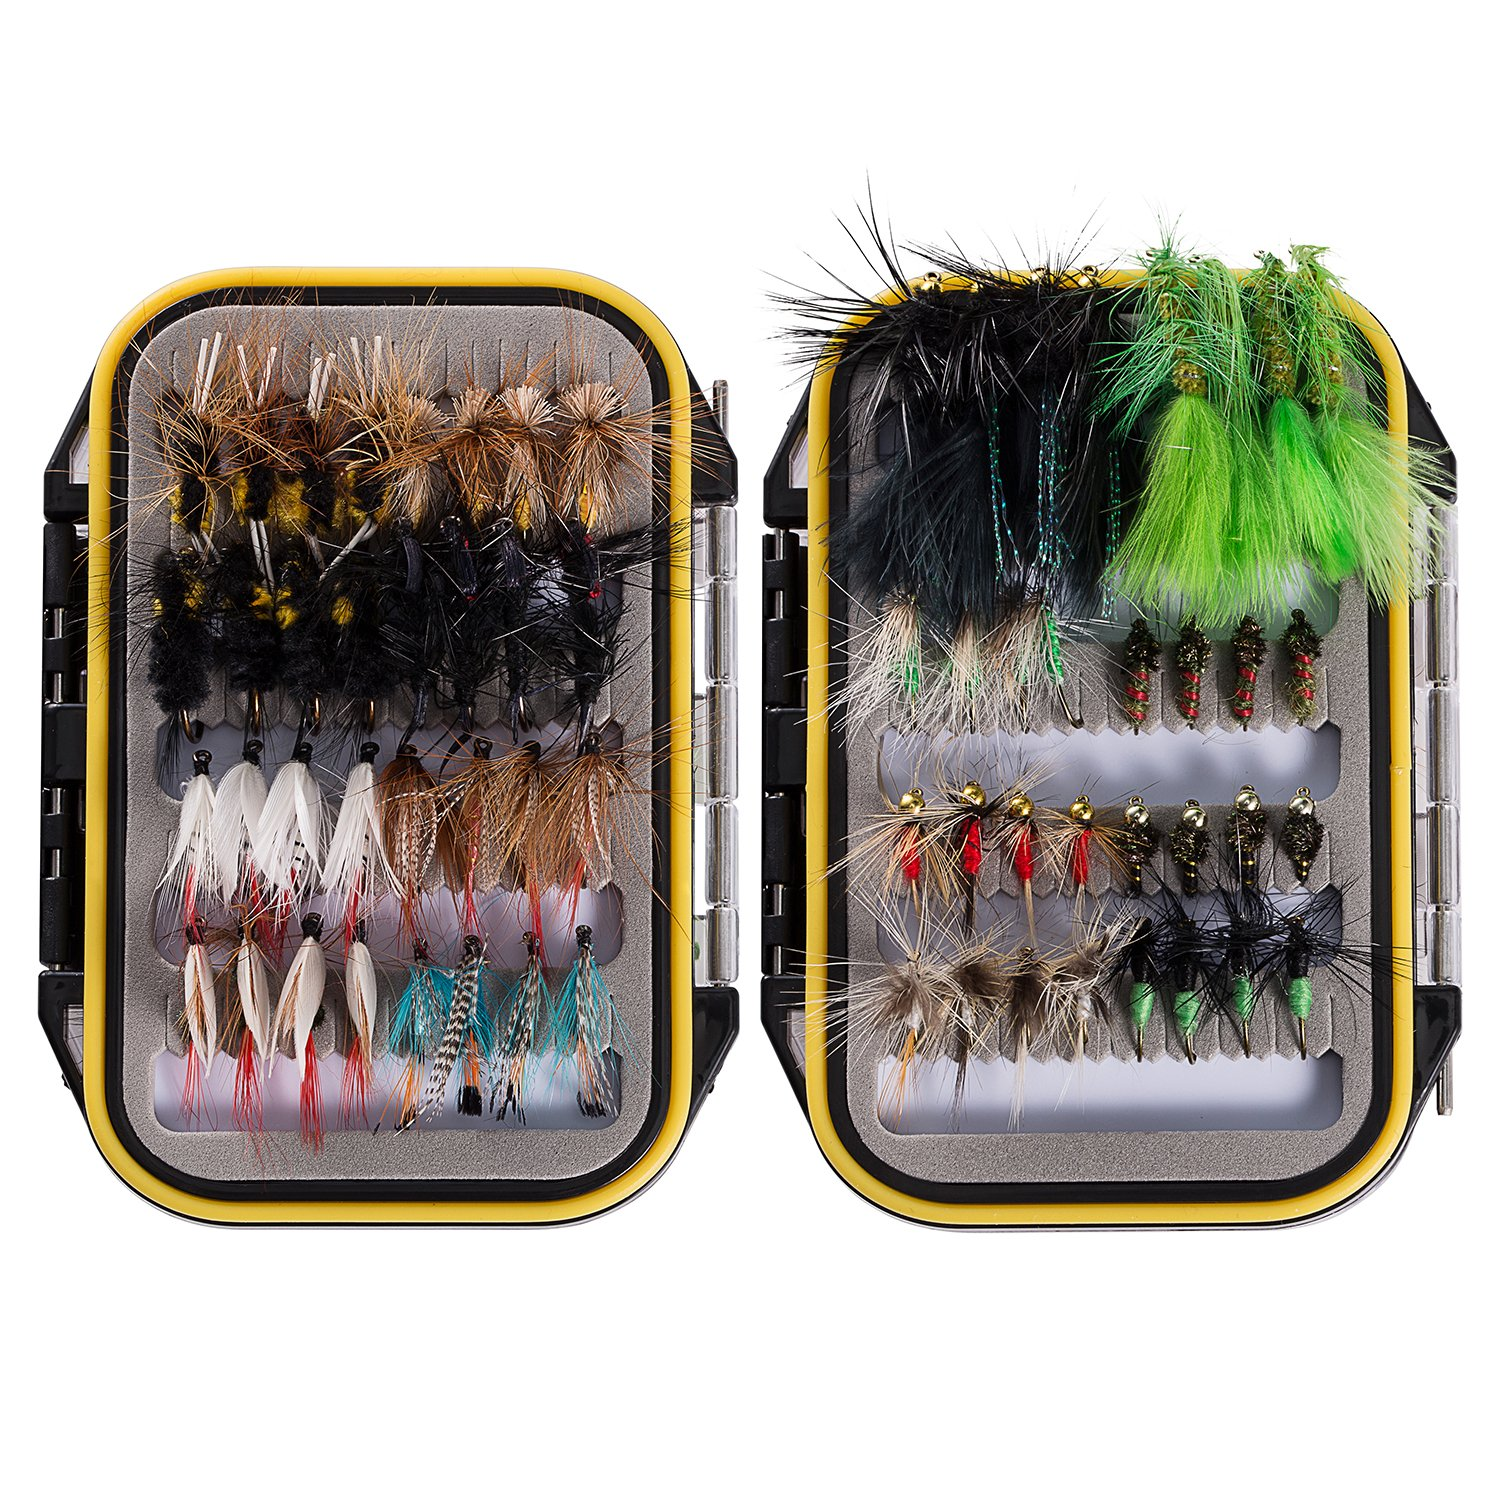 Bassdash Fly Fishing Assorted Flies Kit, Pack of 64 pcs Fly Lure Including Dry Flies, Wet Flies, Nymphs, Streamers, Terrestrials and More, with Double-Side Waterproof Fly Box by Bassdash